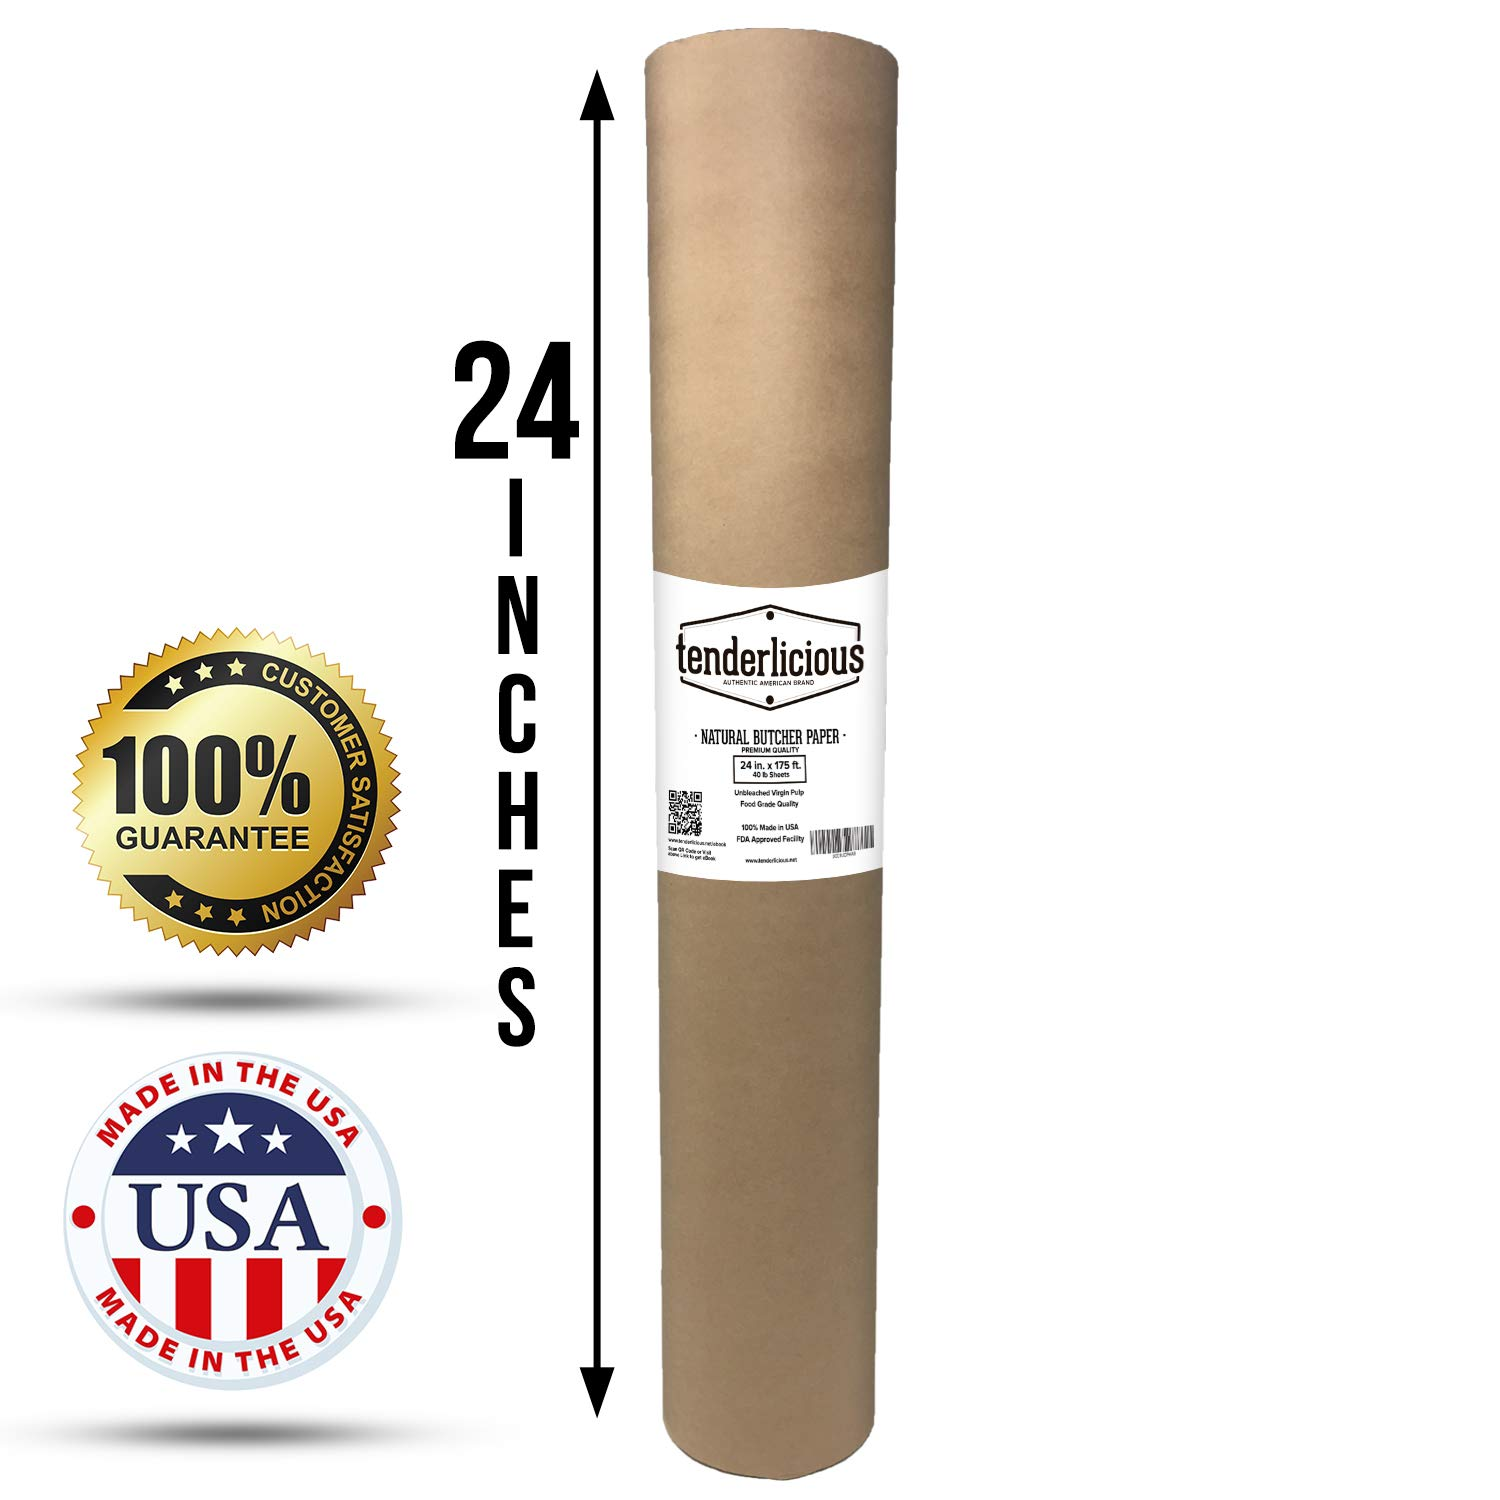 Brown Butcher Kraft Paper Roll - 24 '' x 175' (2100'') Food Wrapping Paper for Beef Briskets - USA Made - All Natural FDA Approved Food Grade BBQ Meat Smoking Paper - Unbleached Unwaxed Uncoated Sheet